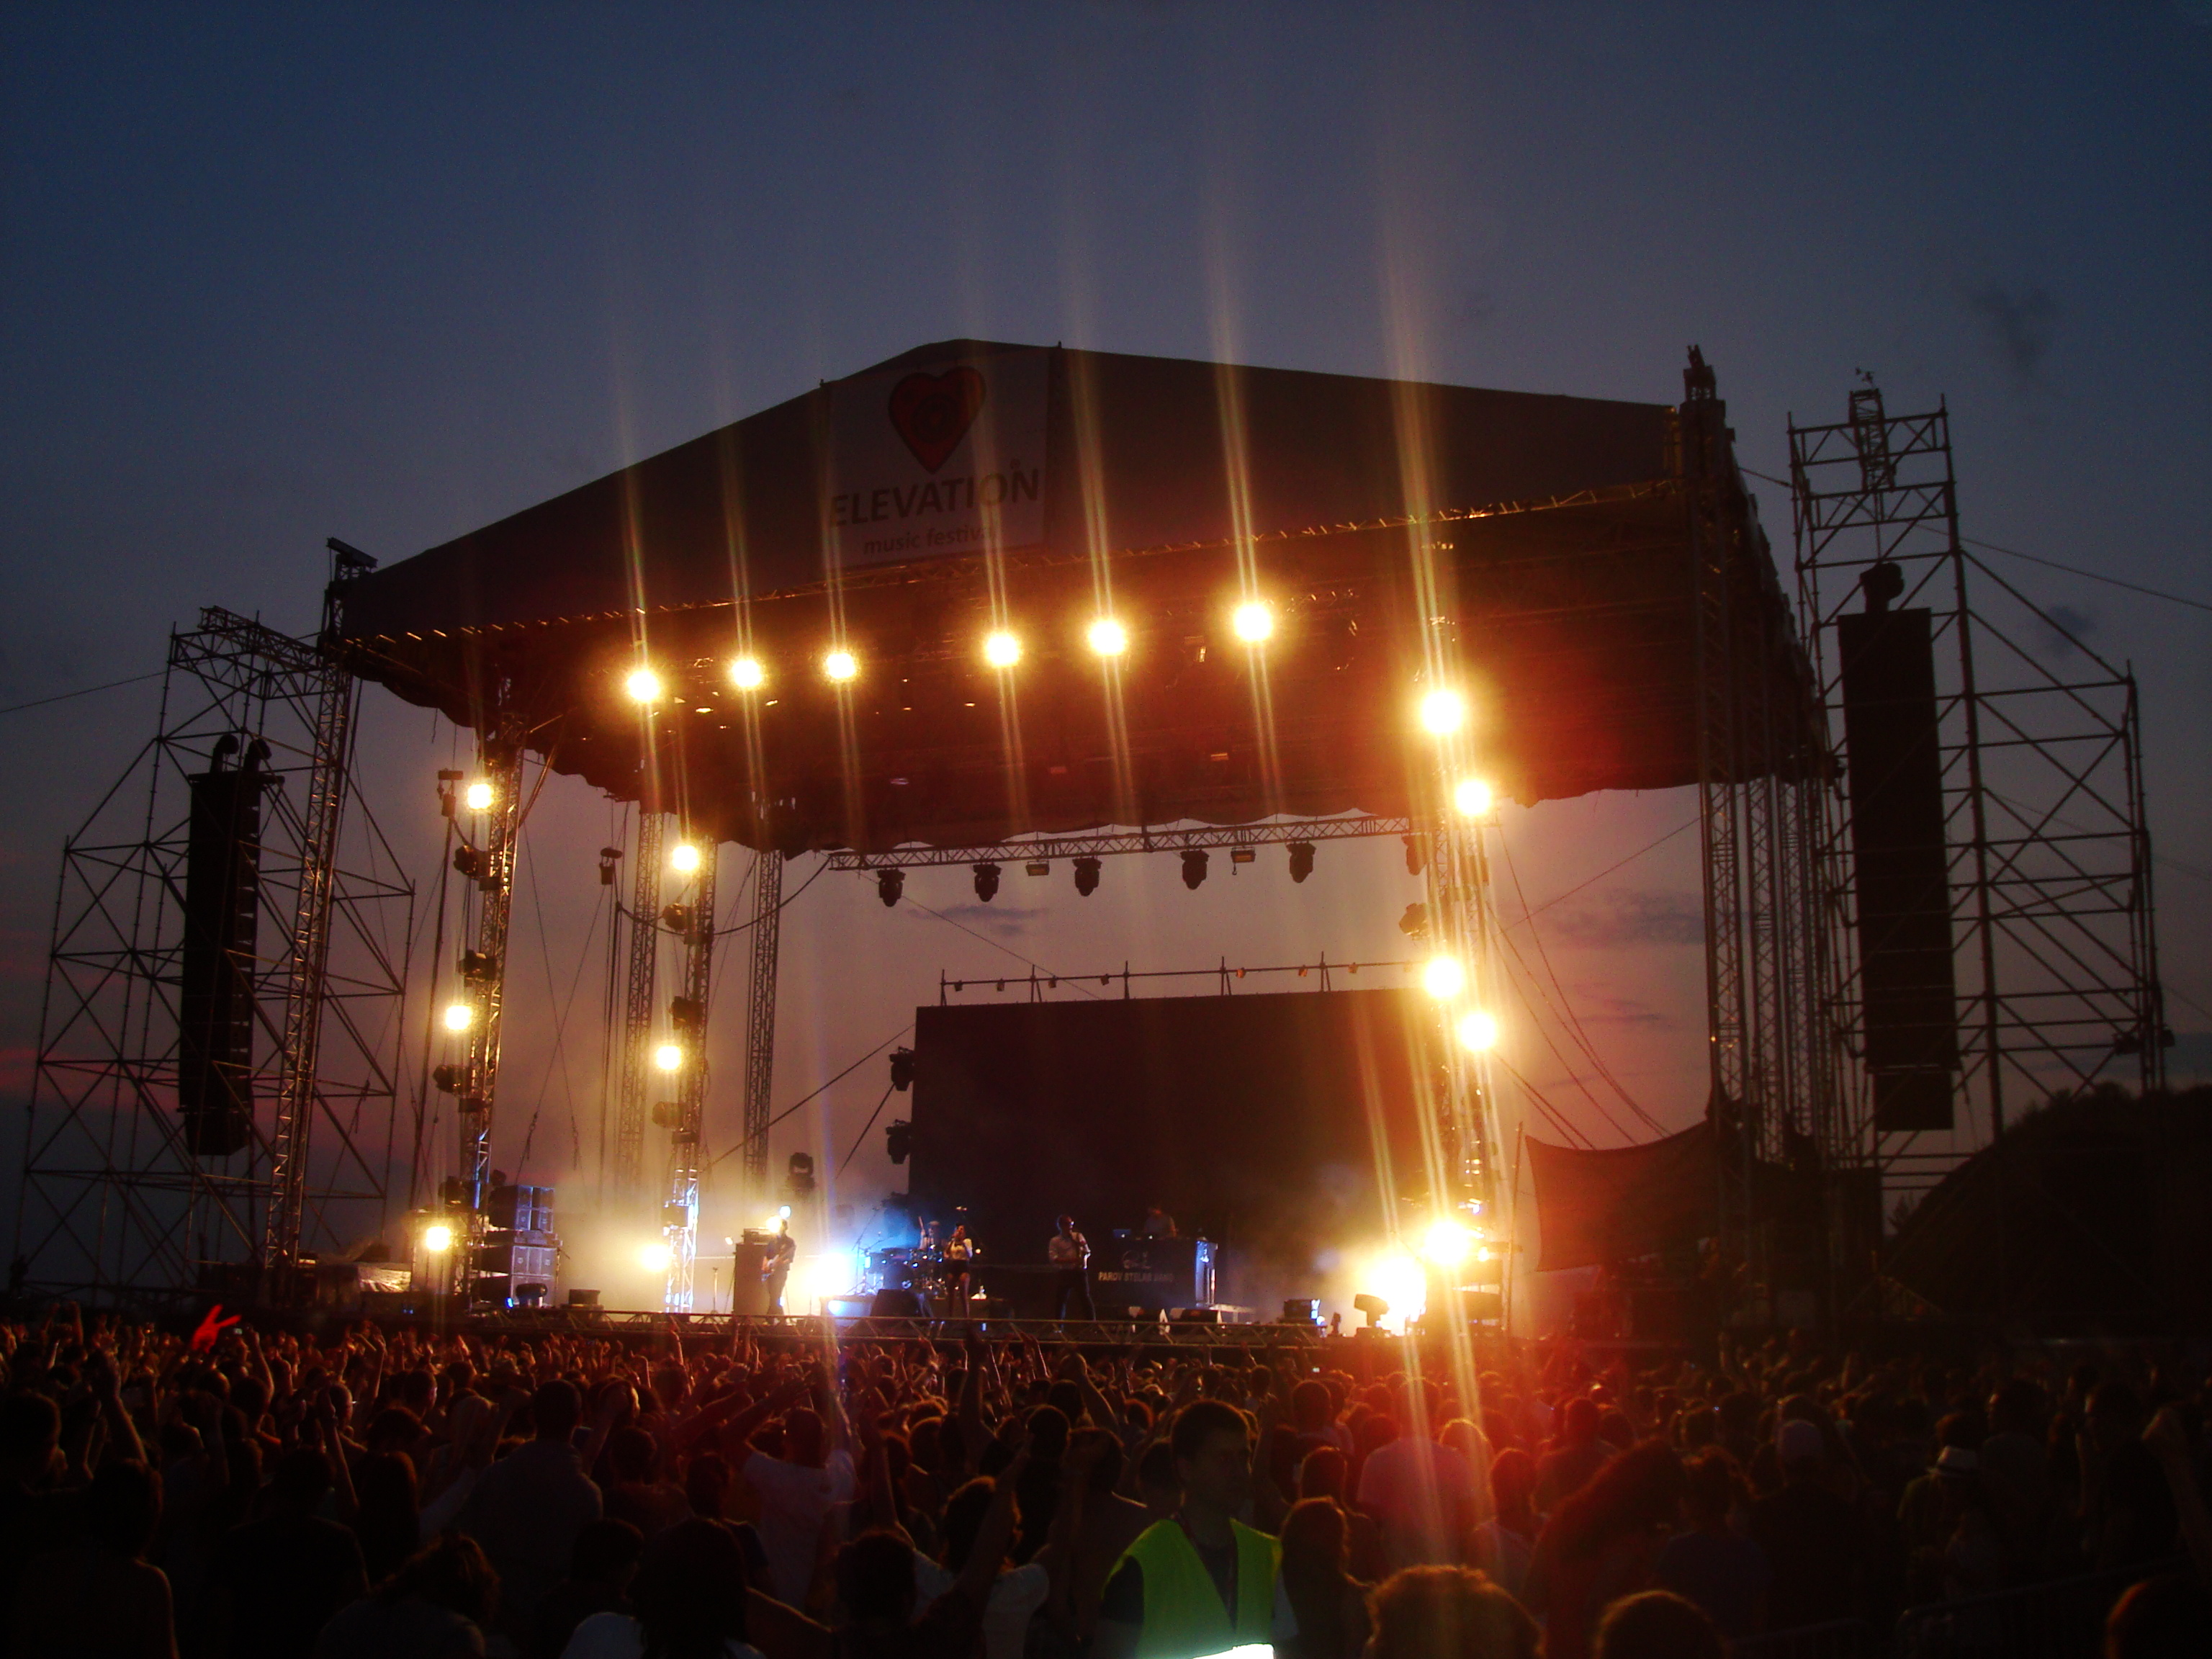 Concert crowd and stage photo